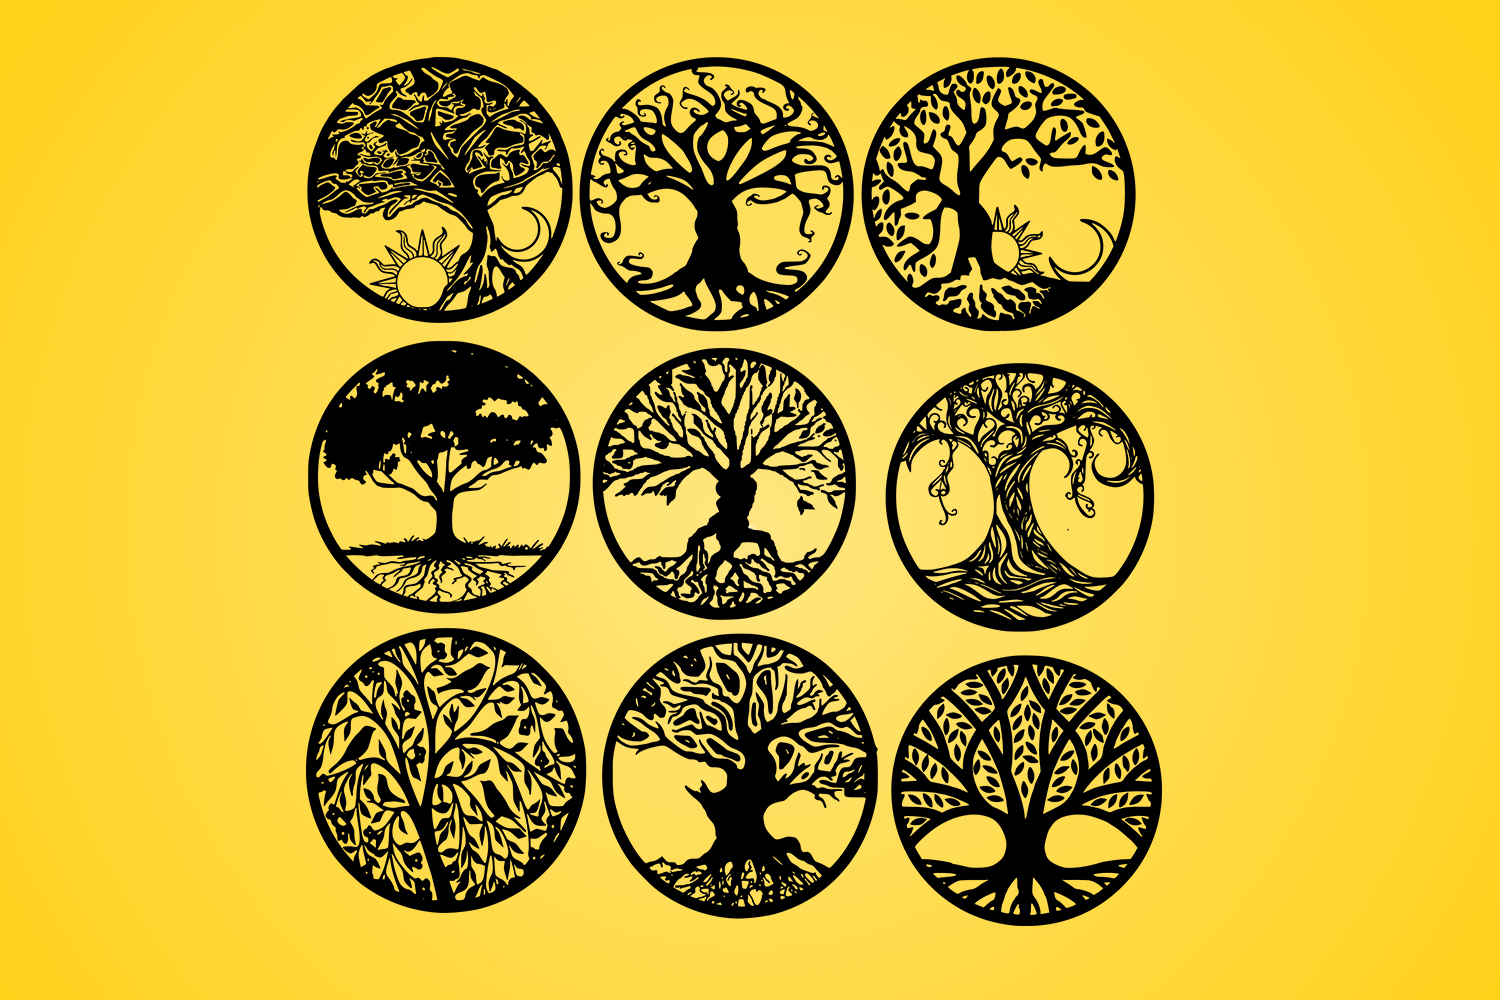 Download Free Life Of Tree Tree Tattoo Silhouette Graphic By Johanruartist for Cricut Explore, Silhouette and other cutting machines.